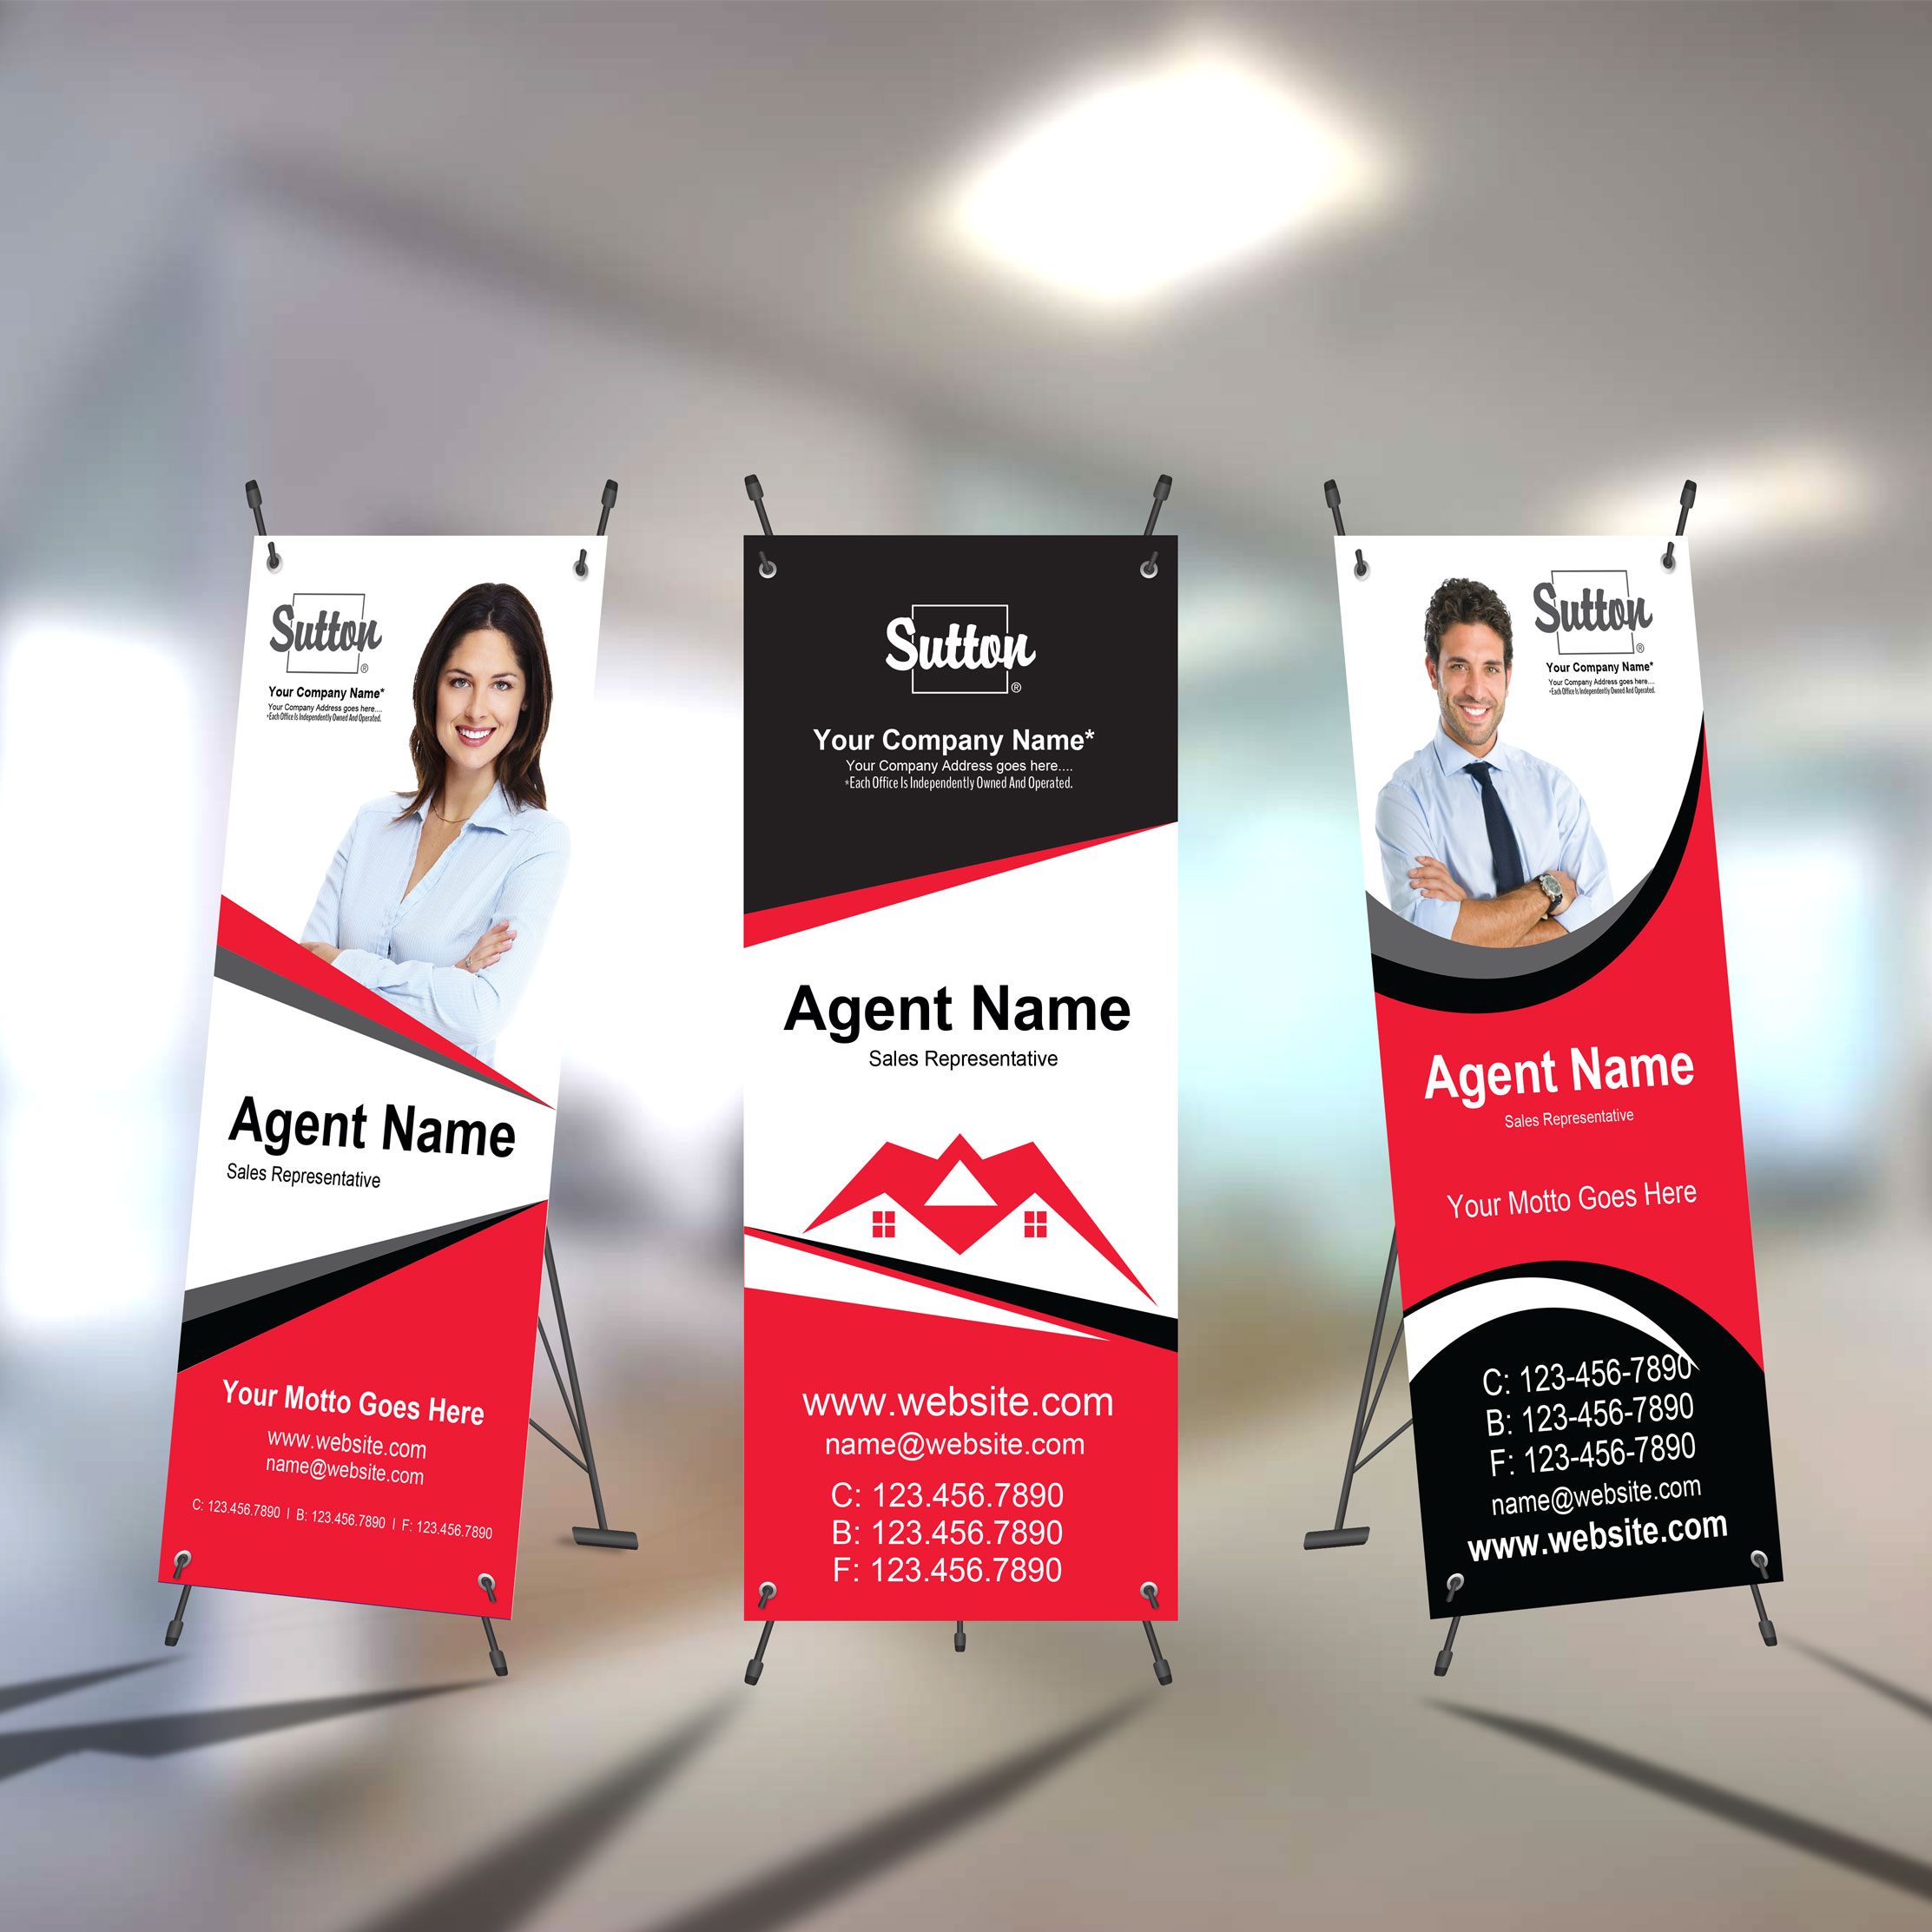 X-Frame Banners<br><br> - Sutton